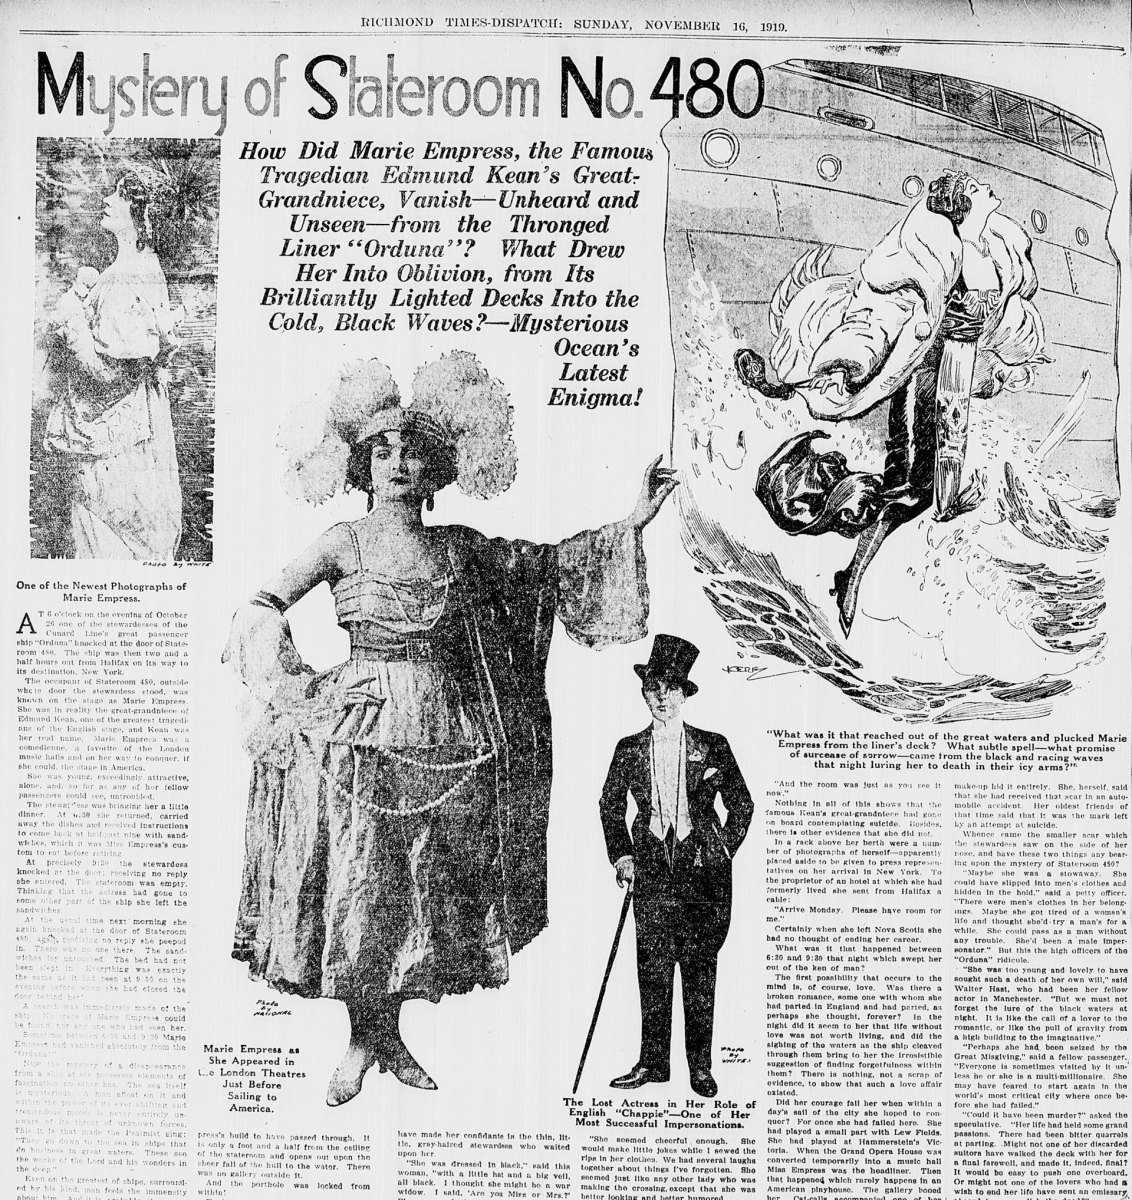 A detail of the article featured in the Richmond Times on November 16, 1919.